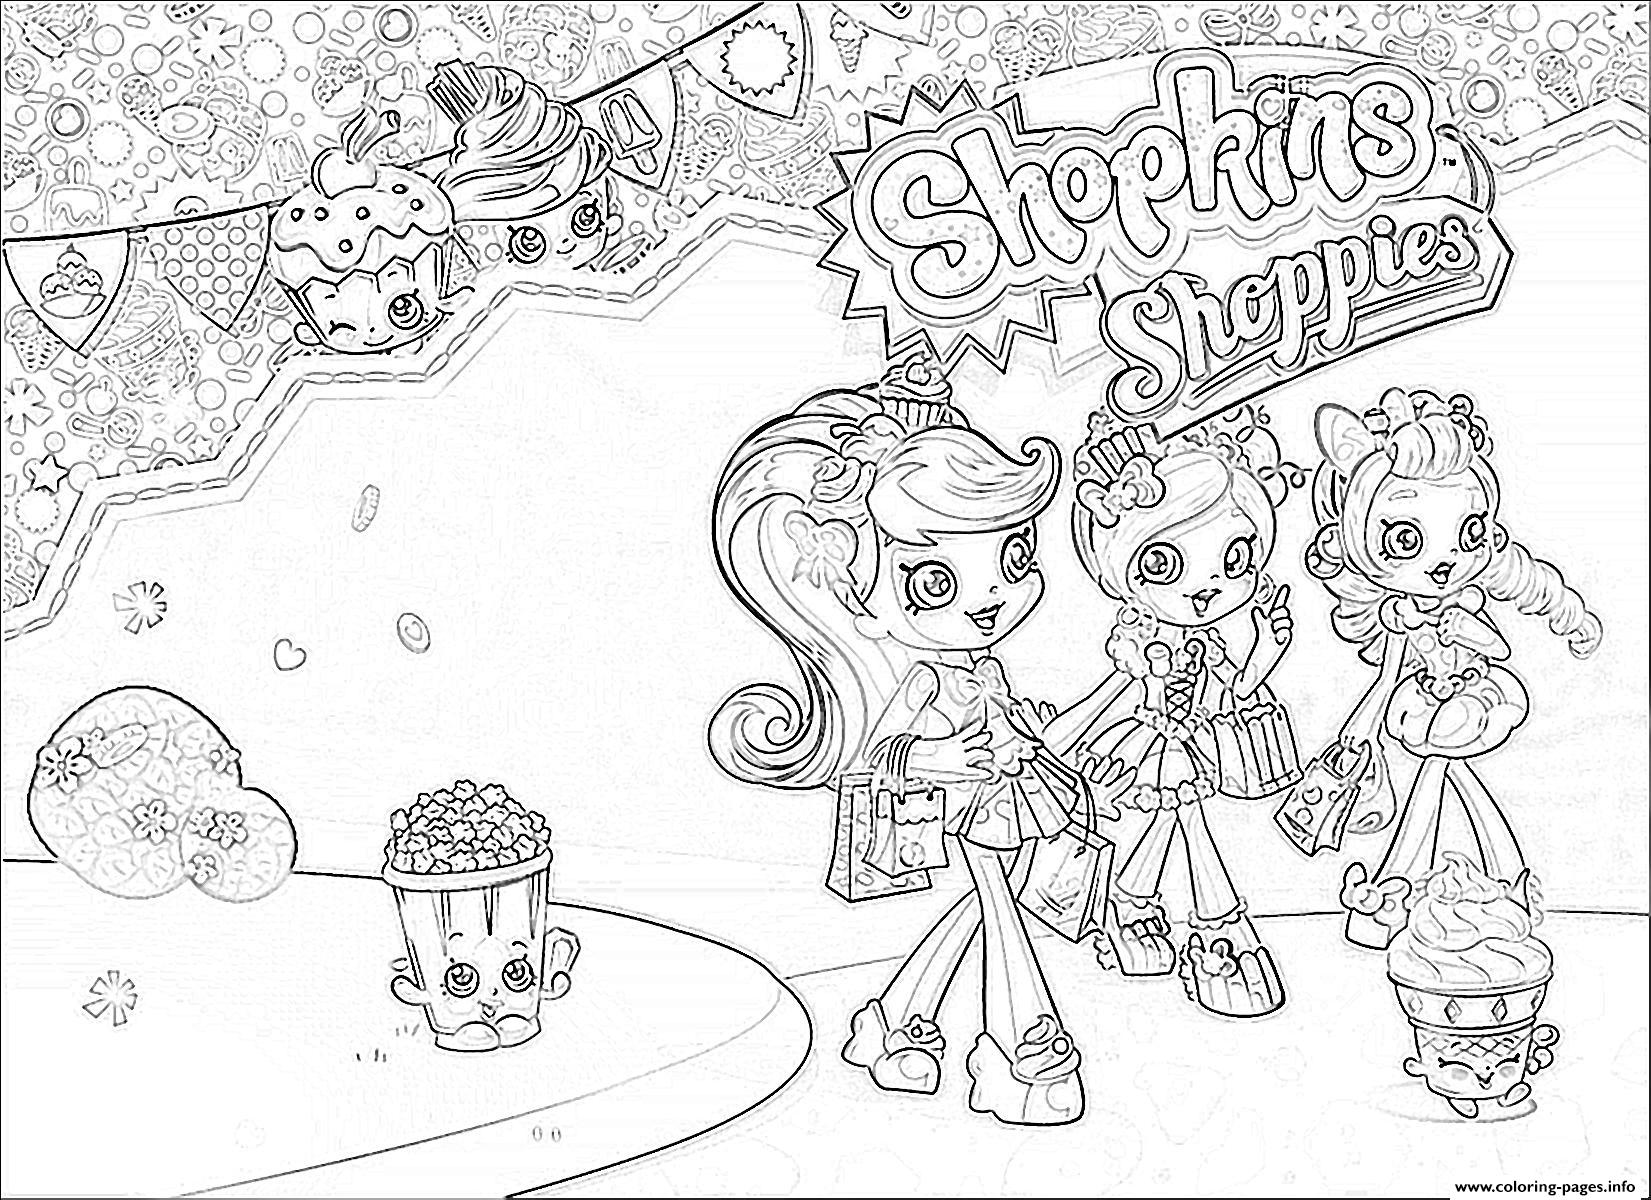 Shopkins color sheets - 2 Shopkins 2016 Sneaky Kooky Cookie Coloring Pages